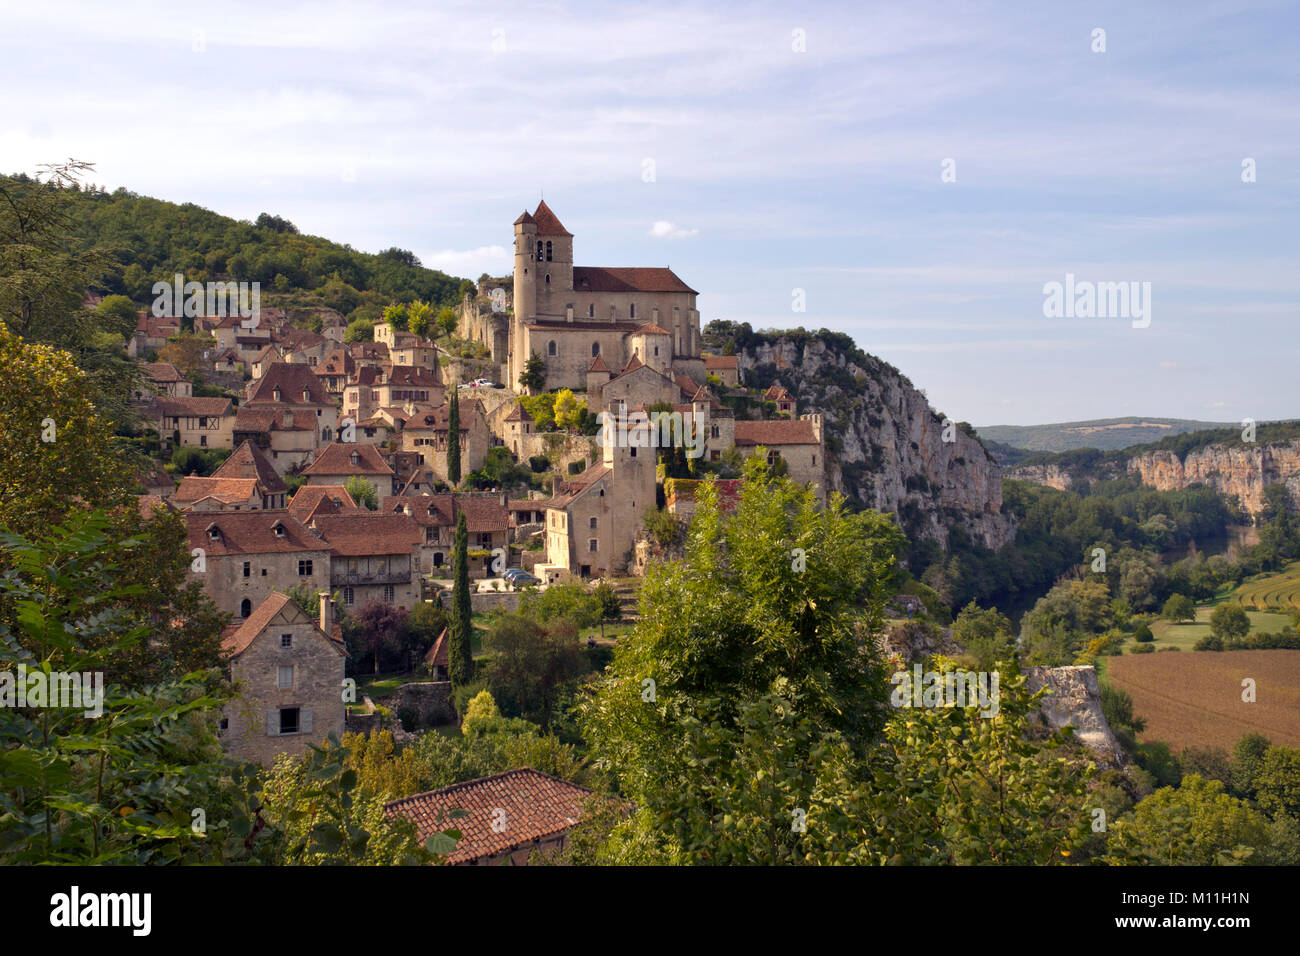 Europe, France, Midi Pyrenees, Lot, the historic clifftop village tourist attraction of St Cirq Lapopie - Stock Image